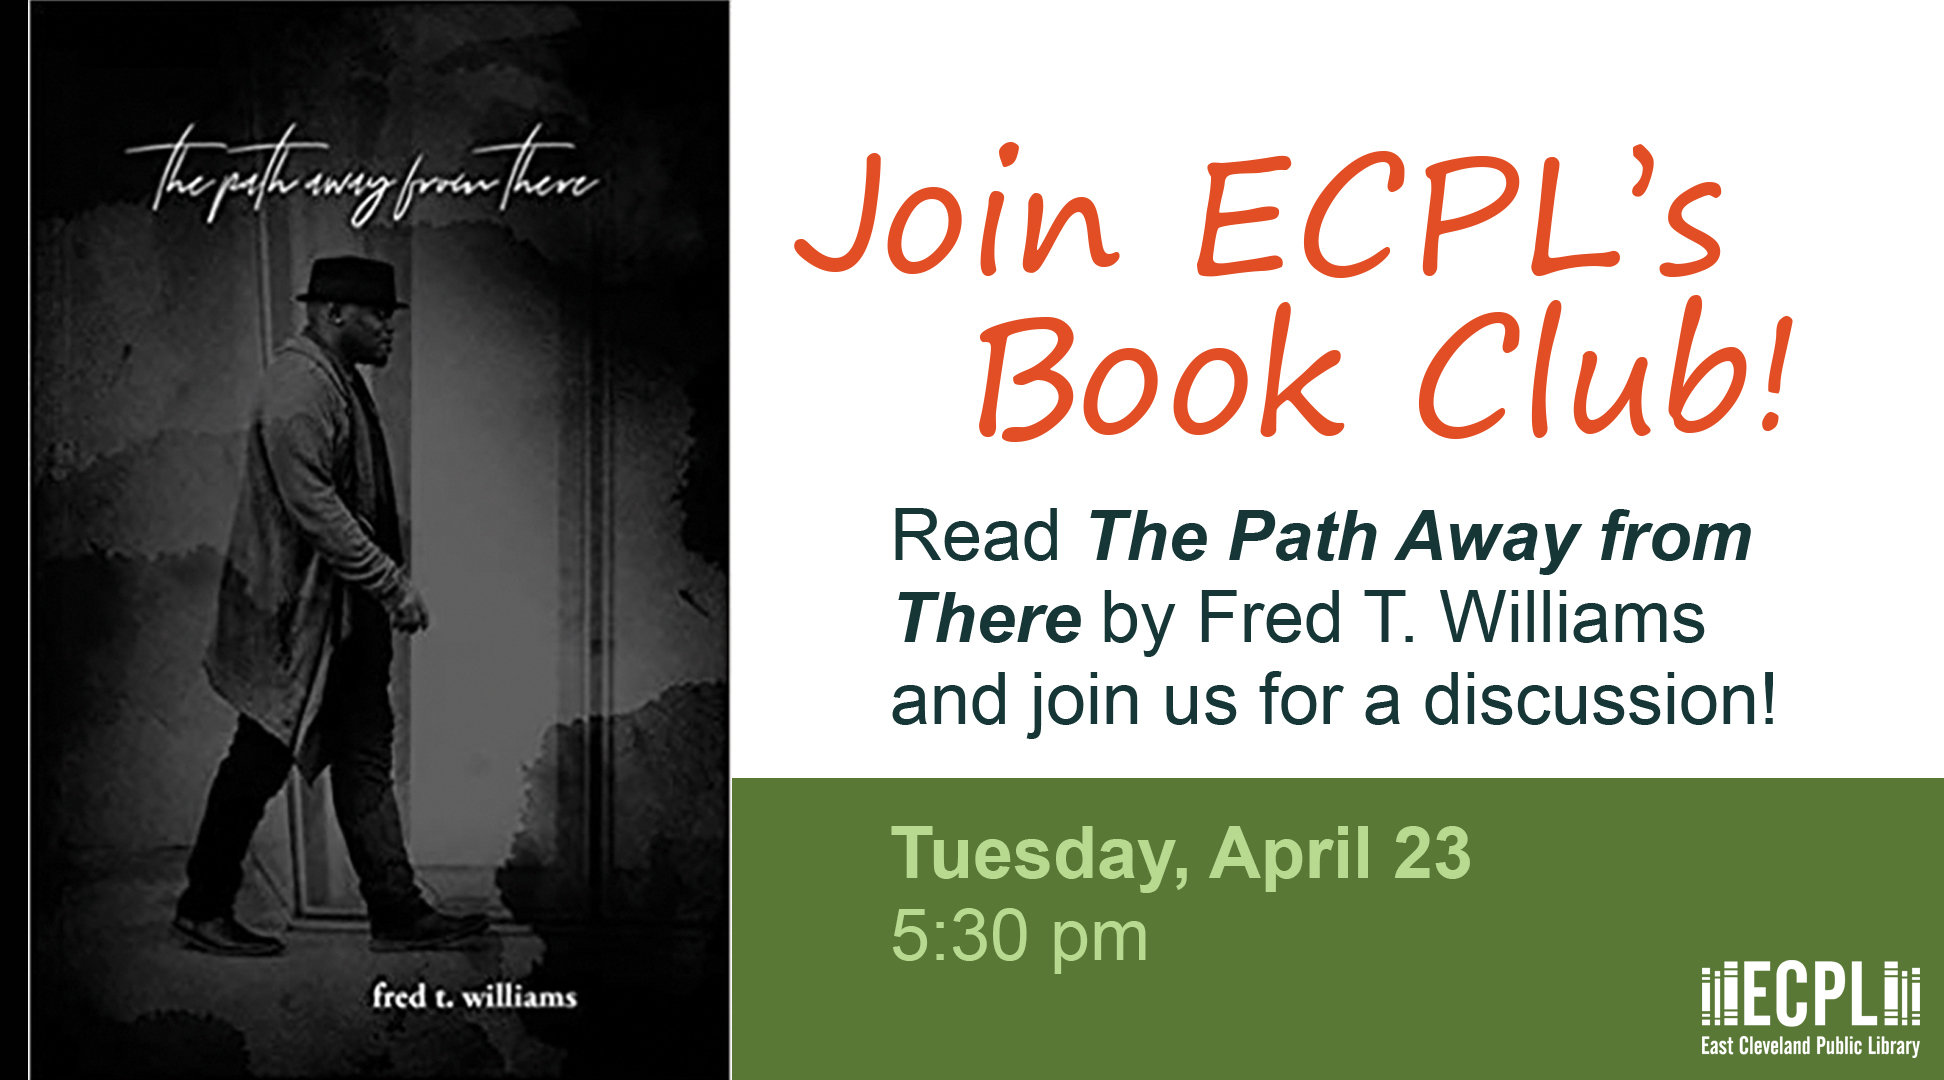 ECPL Book Club! (The Path Away from There)